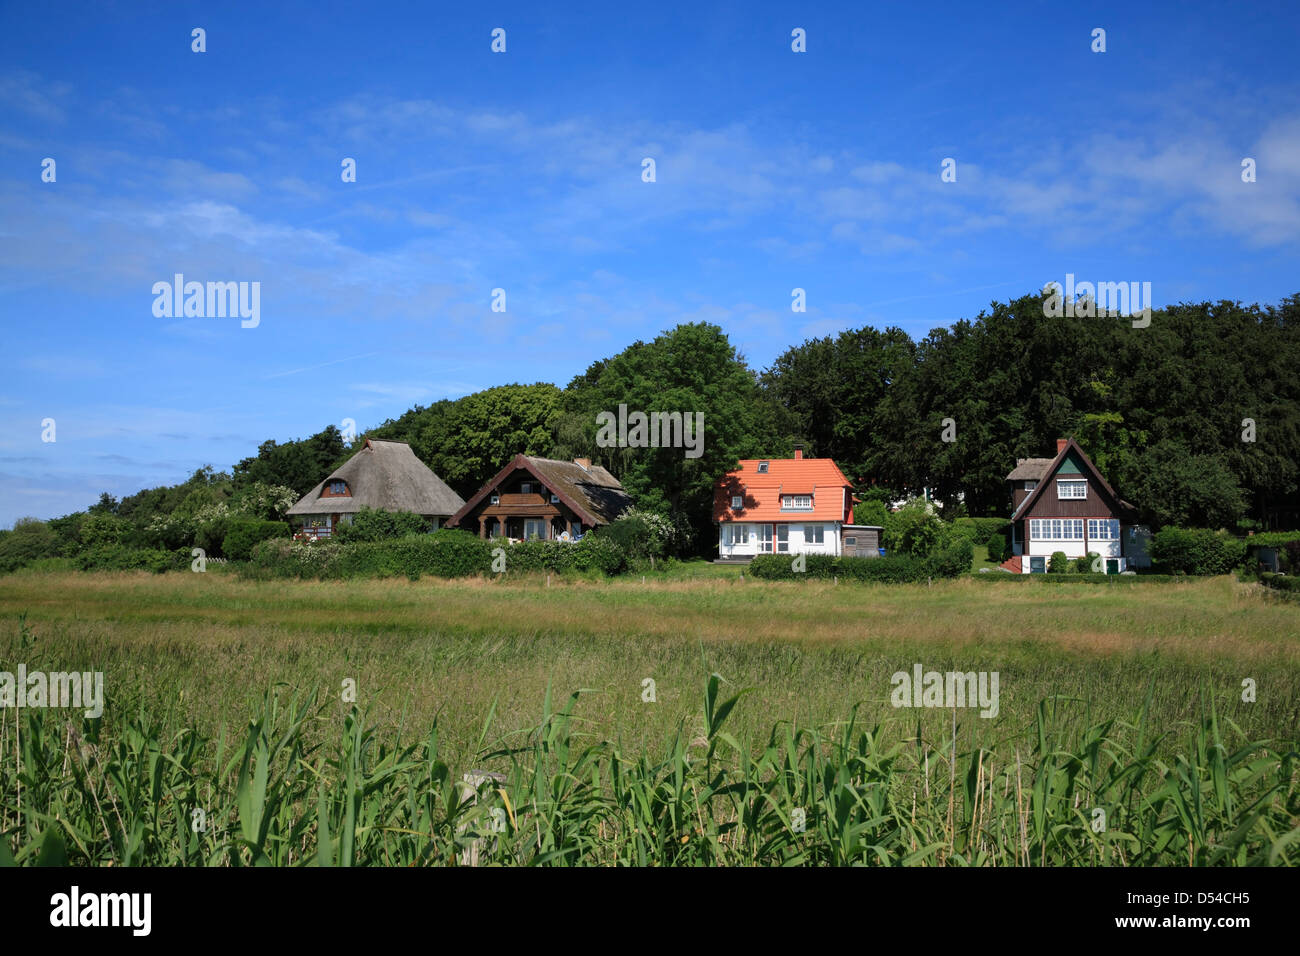 Hiddensee Island, holliday homes in Kloster, Mecklenburg Western Pomerania, Germany - Stock Image